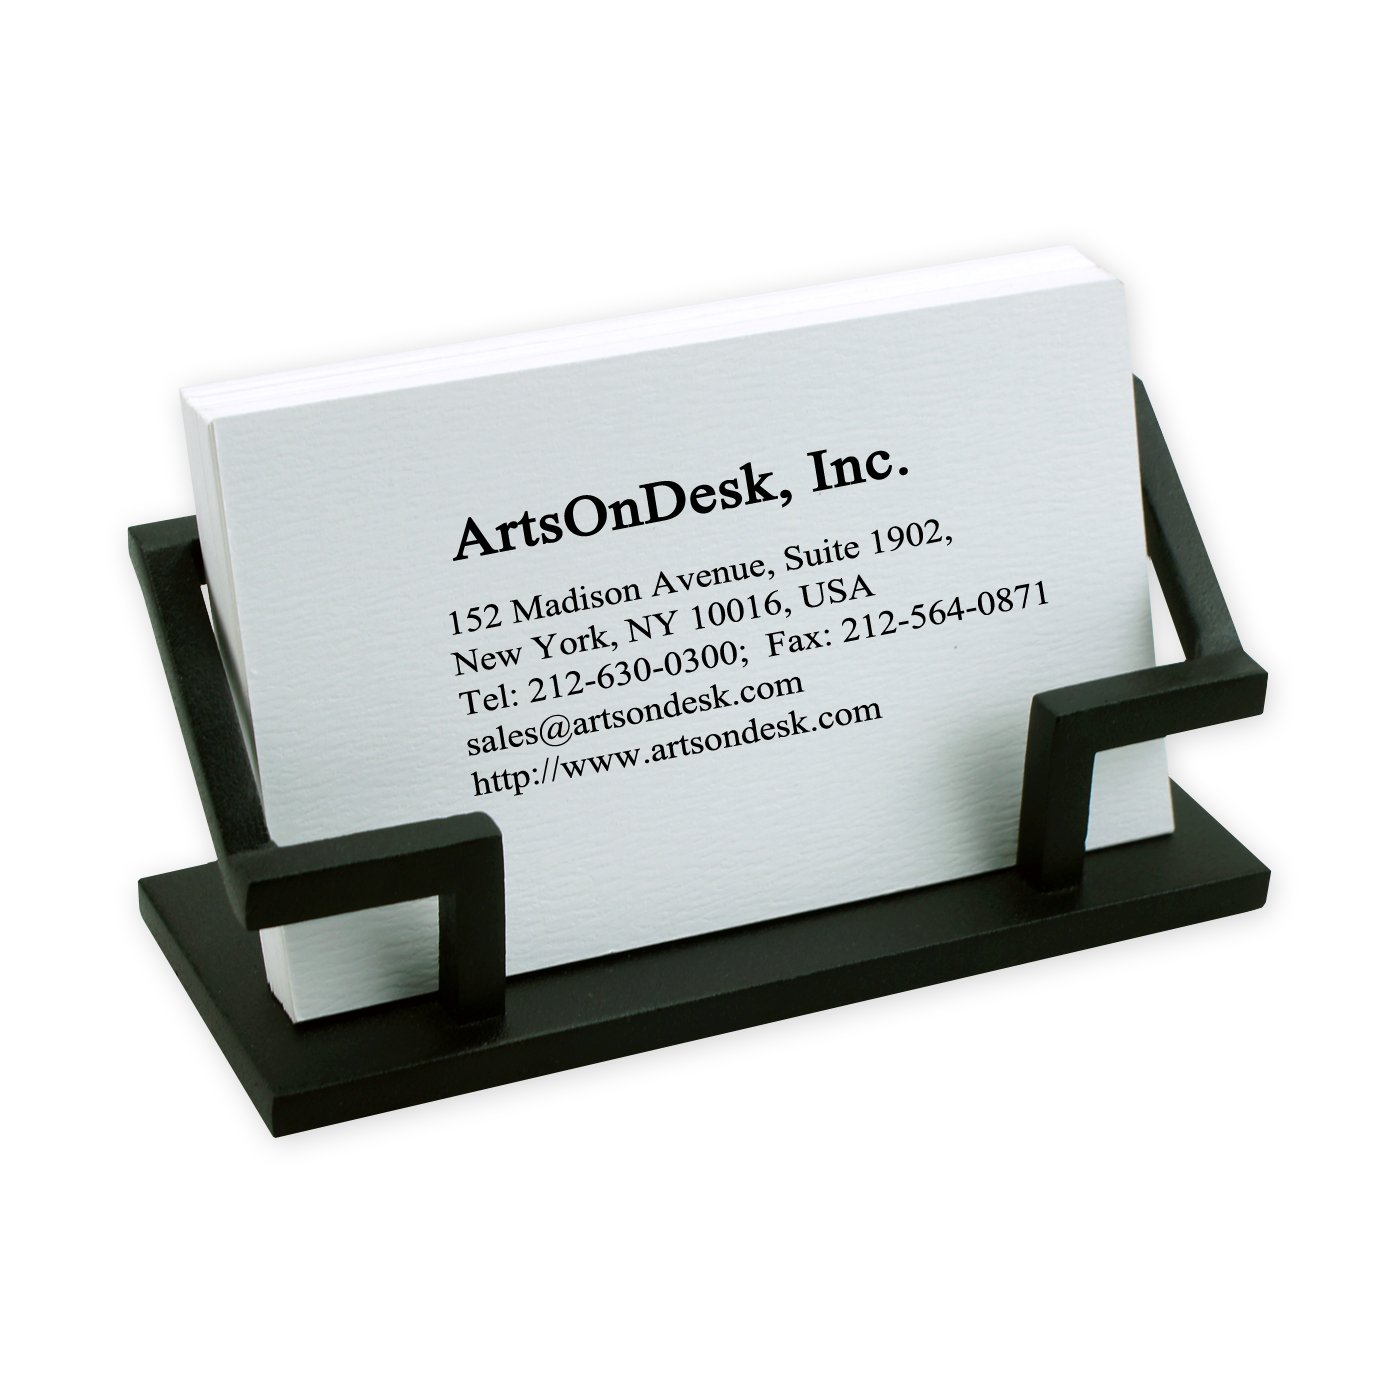 ArtsOnDesk Modern Art Business Card Holder Bk301 Steel Black Patented - Desk Accessory Name Card Stand Case Plate Display Office Organizer Christmas Gift Holiday Valentines Day Graduation Present